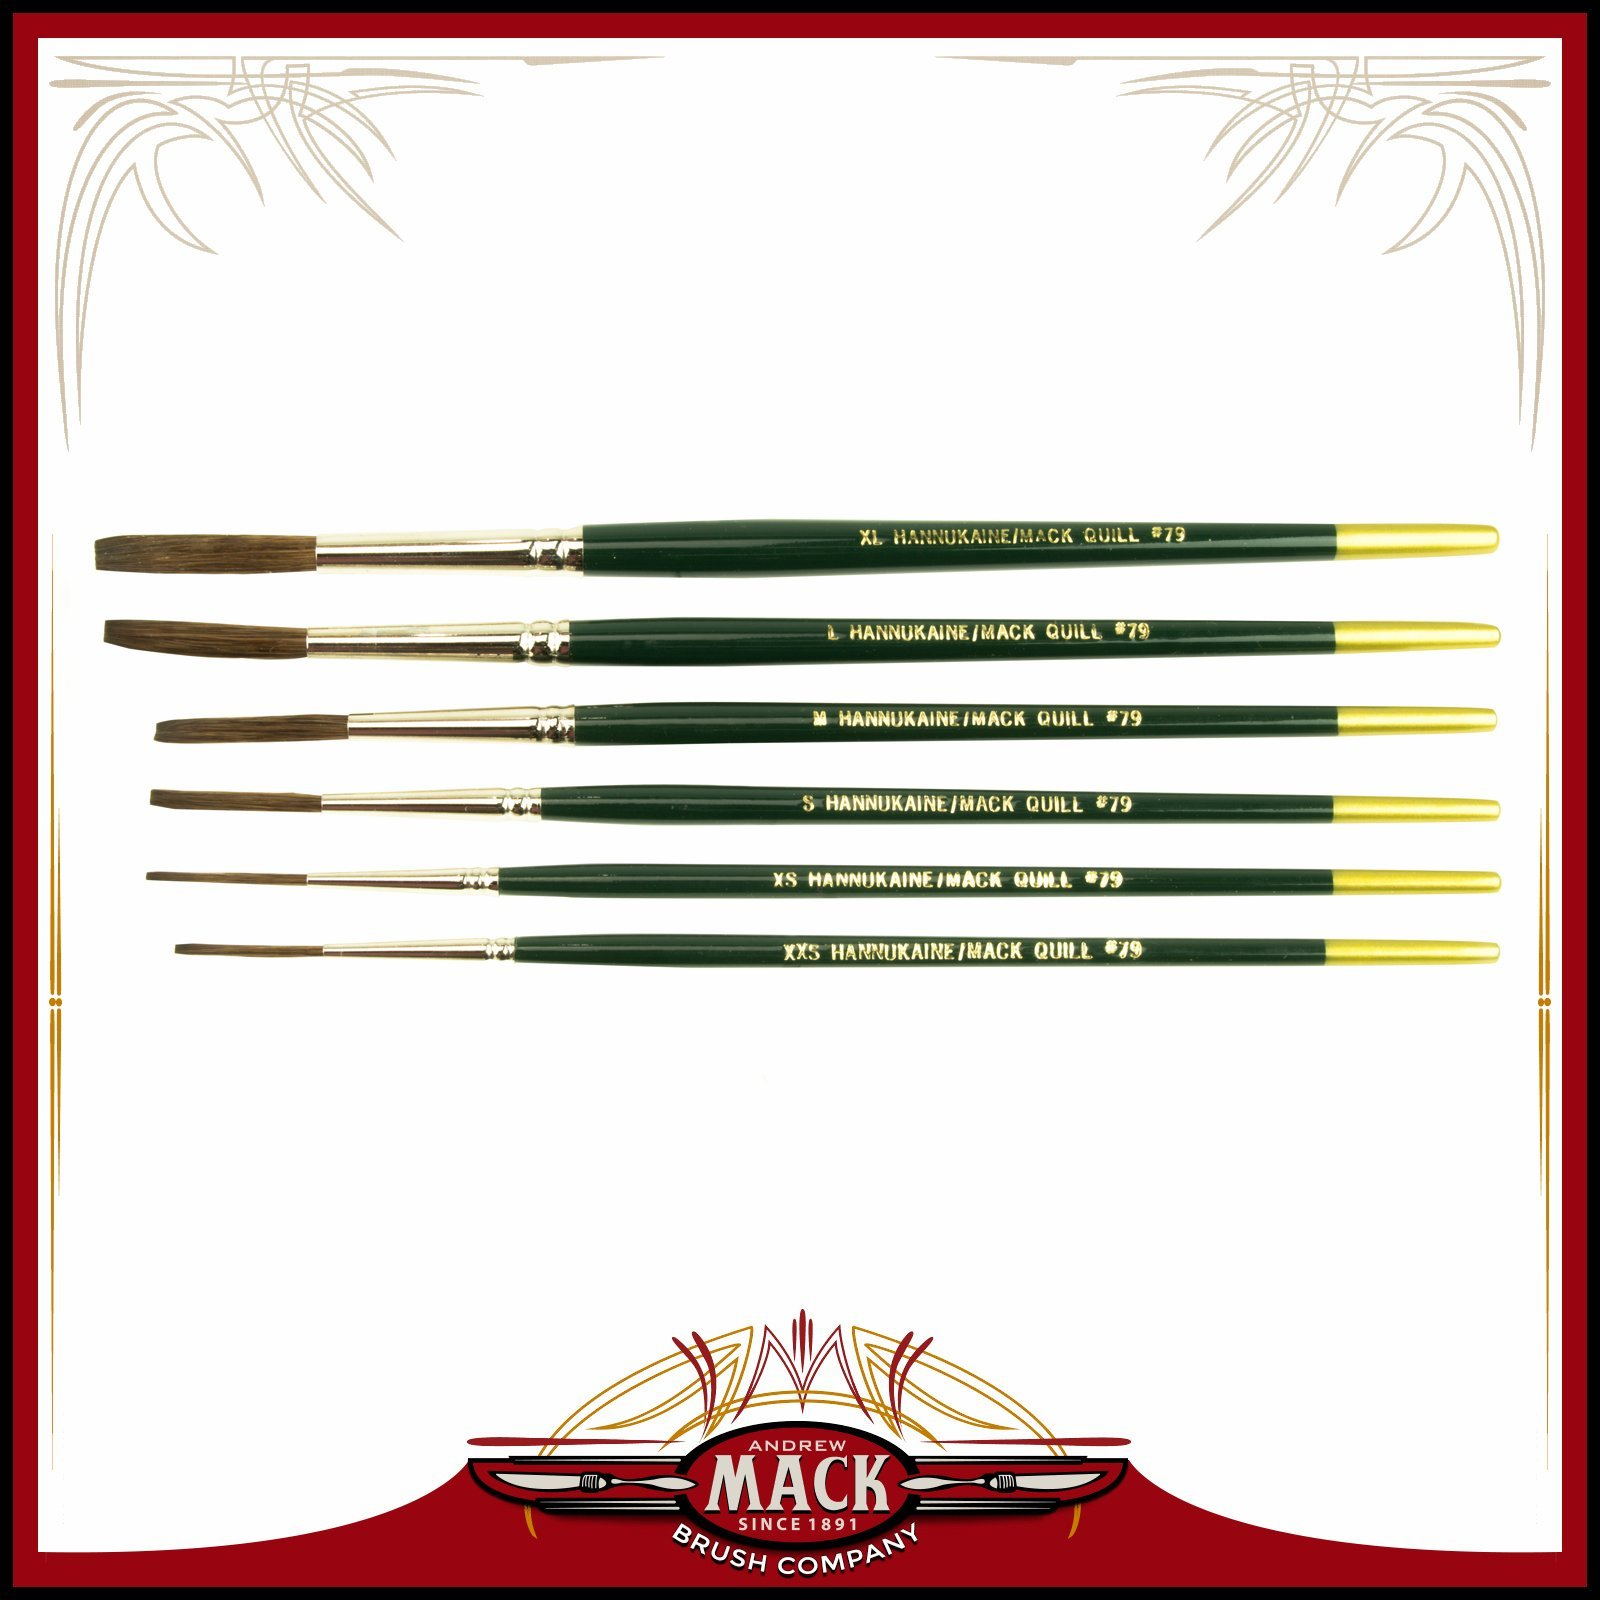 MACK Hannukaine Quill Pinstripe Brush/Brushes Set of 6 by Mack